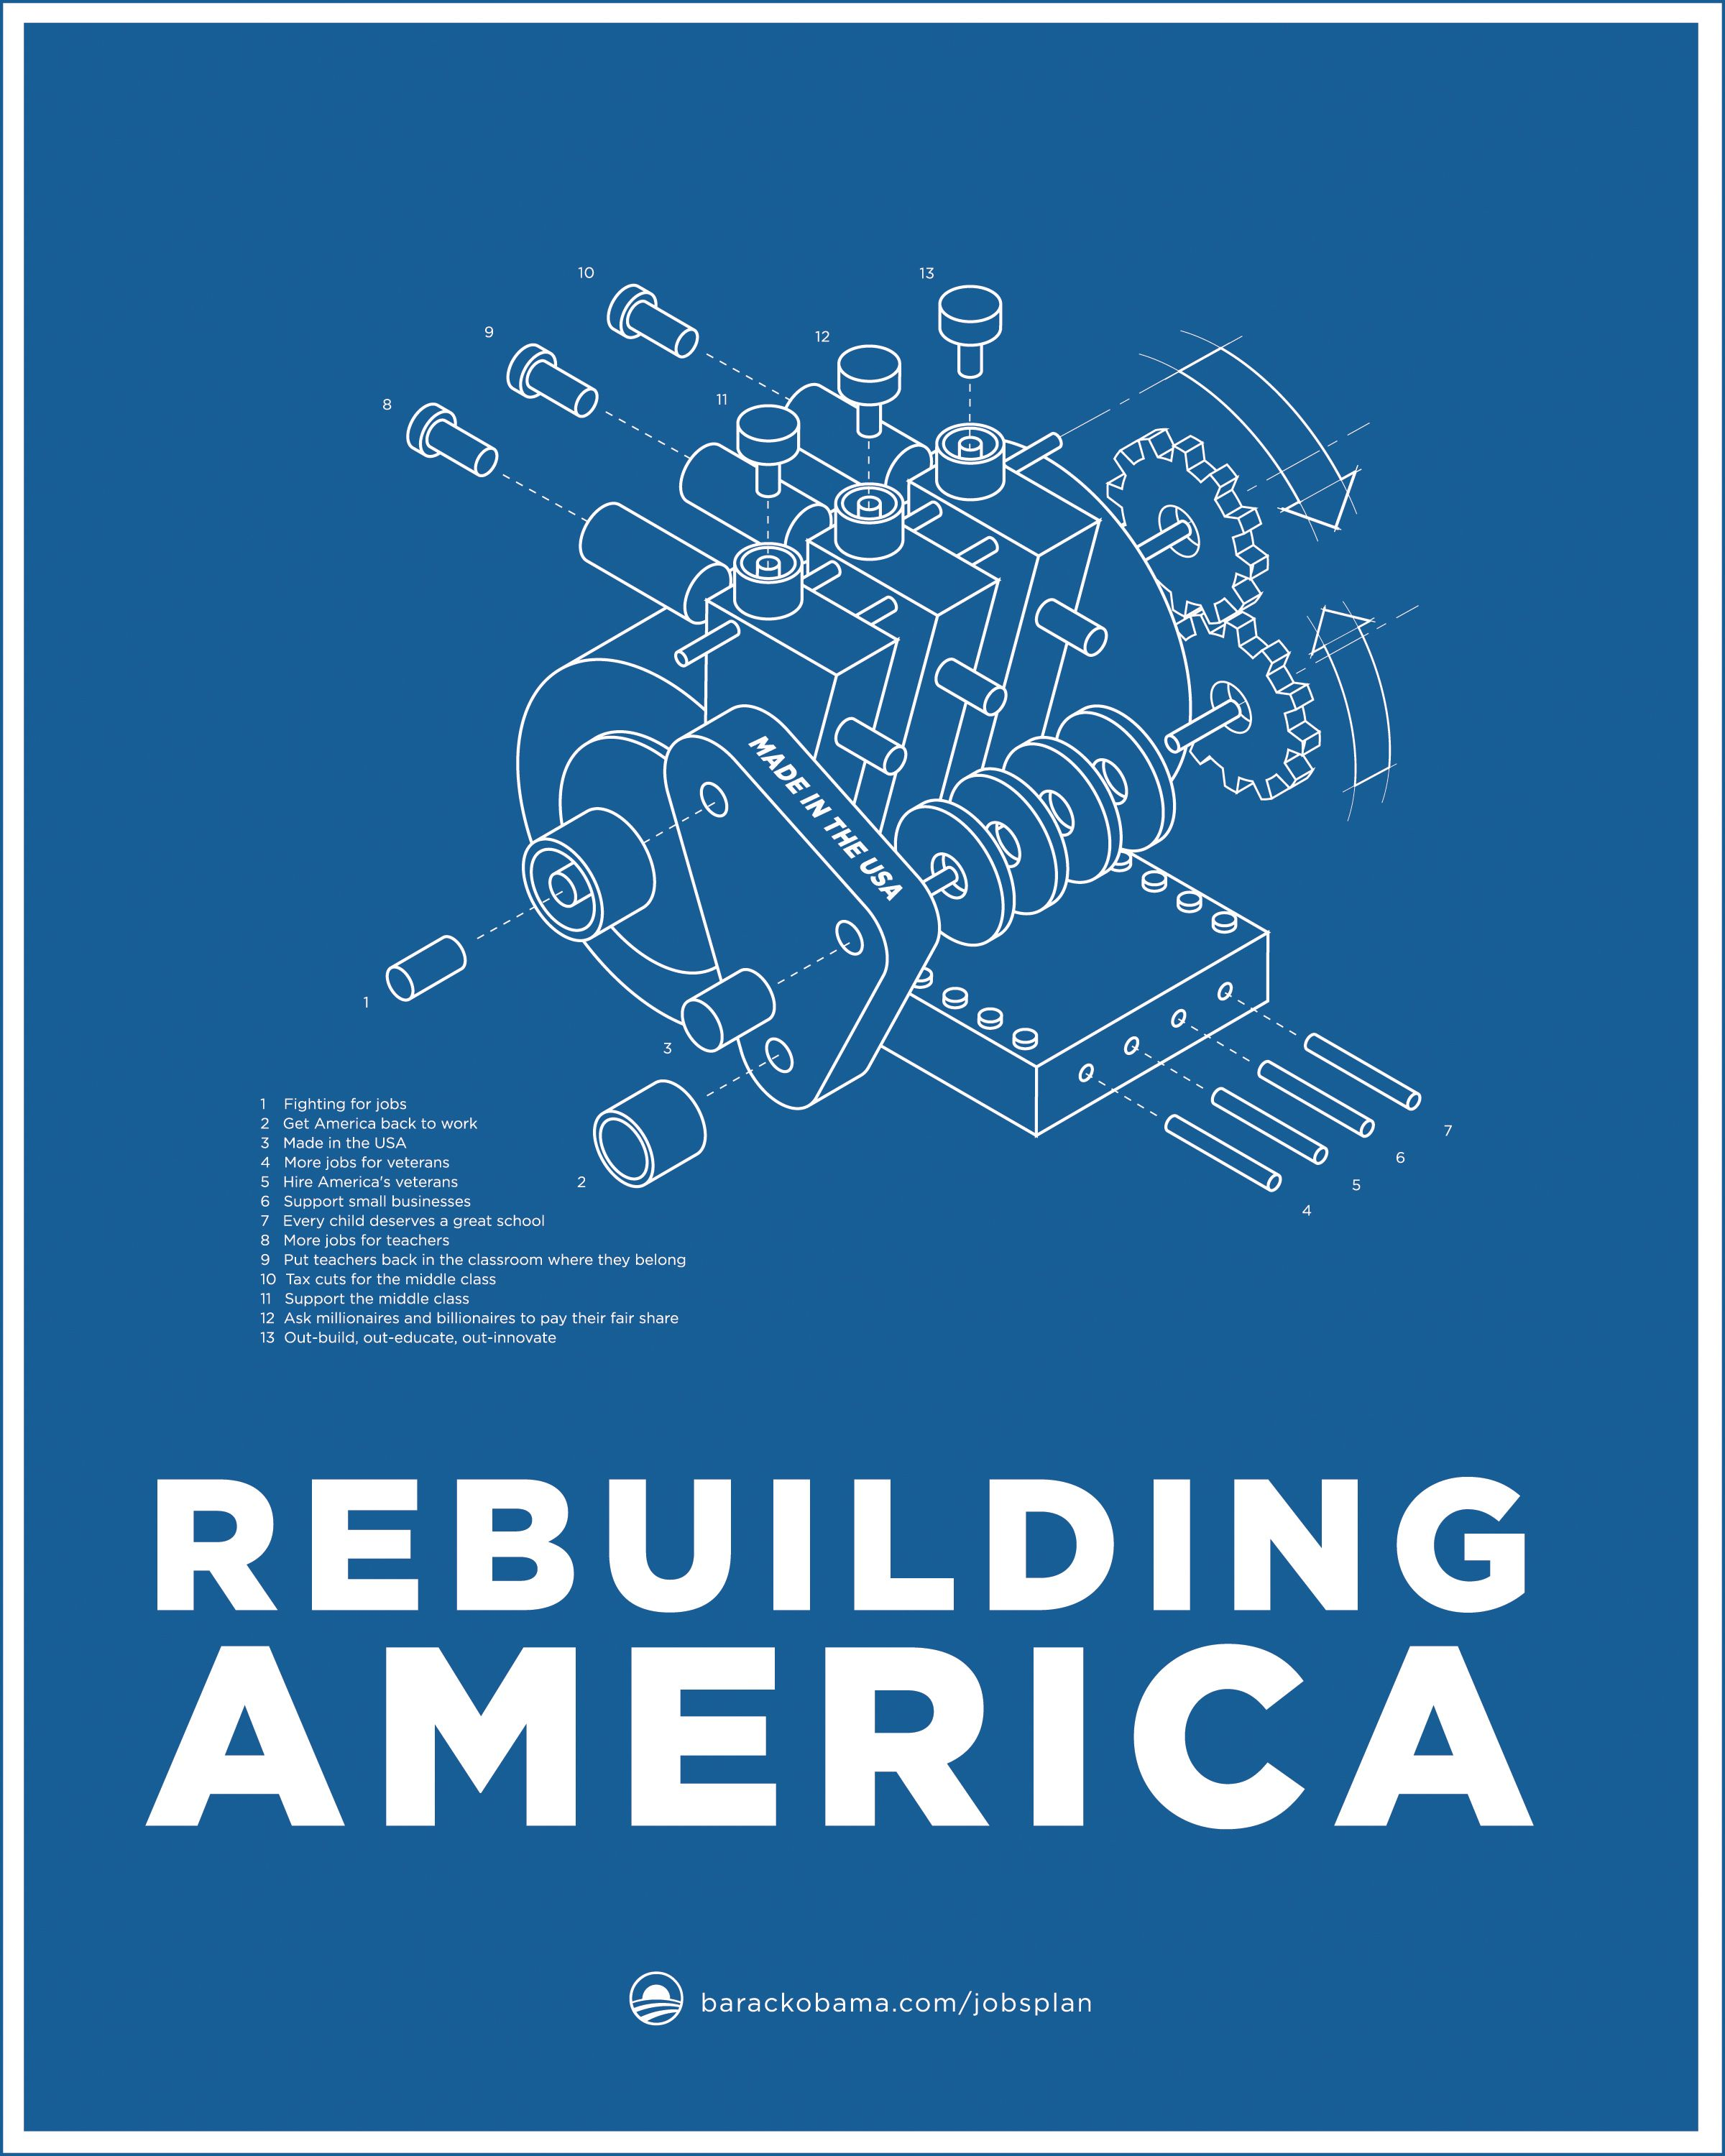 Obama jobs act blueprint poster series motor by aram asarian at obama jobs act blueprint poster series motor by aram asarian at aram designs malvernweather Image collections